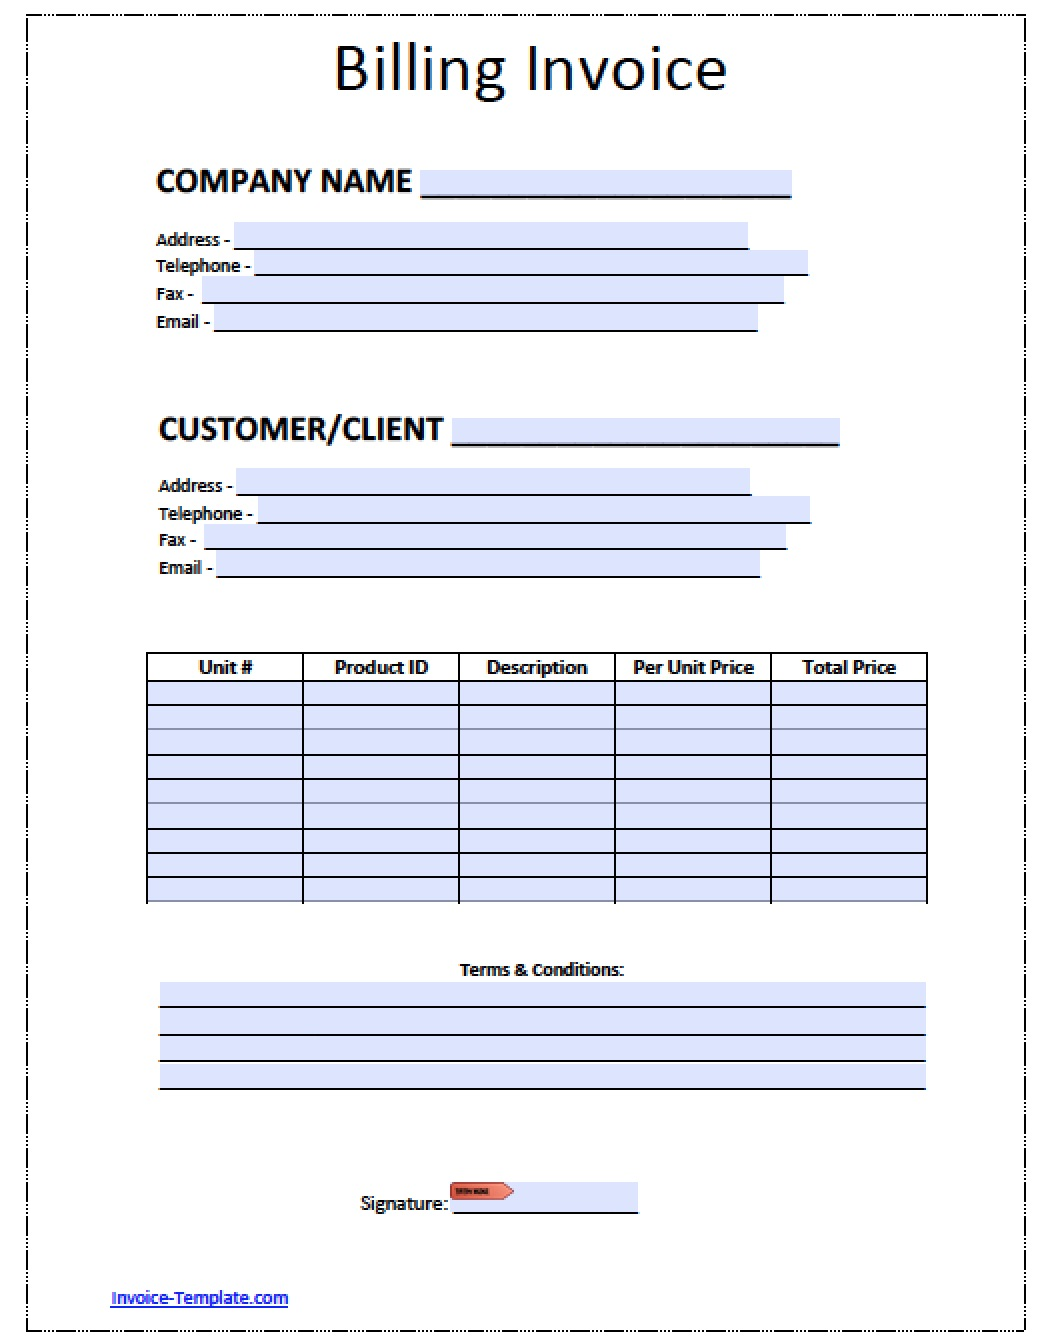 Free Billing Invoice Template Excel PDF Word Doc - Blank invoice word document for service business